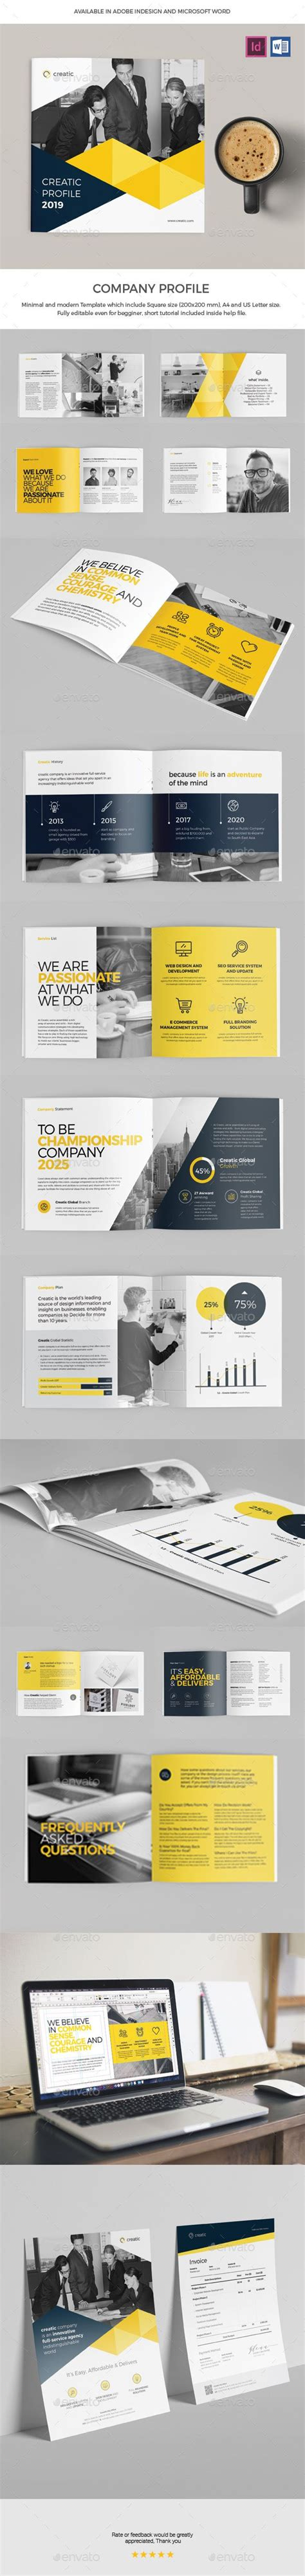 Business Infographic Company Brochure Template Indesign Indd 26 Pages Infographicnow Infographic Indesign Template